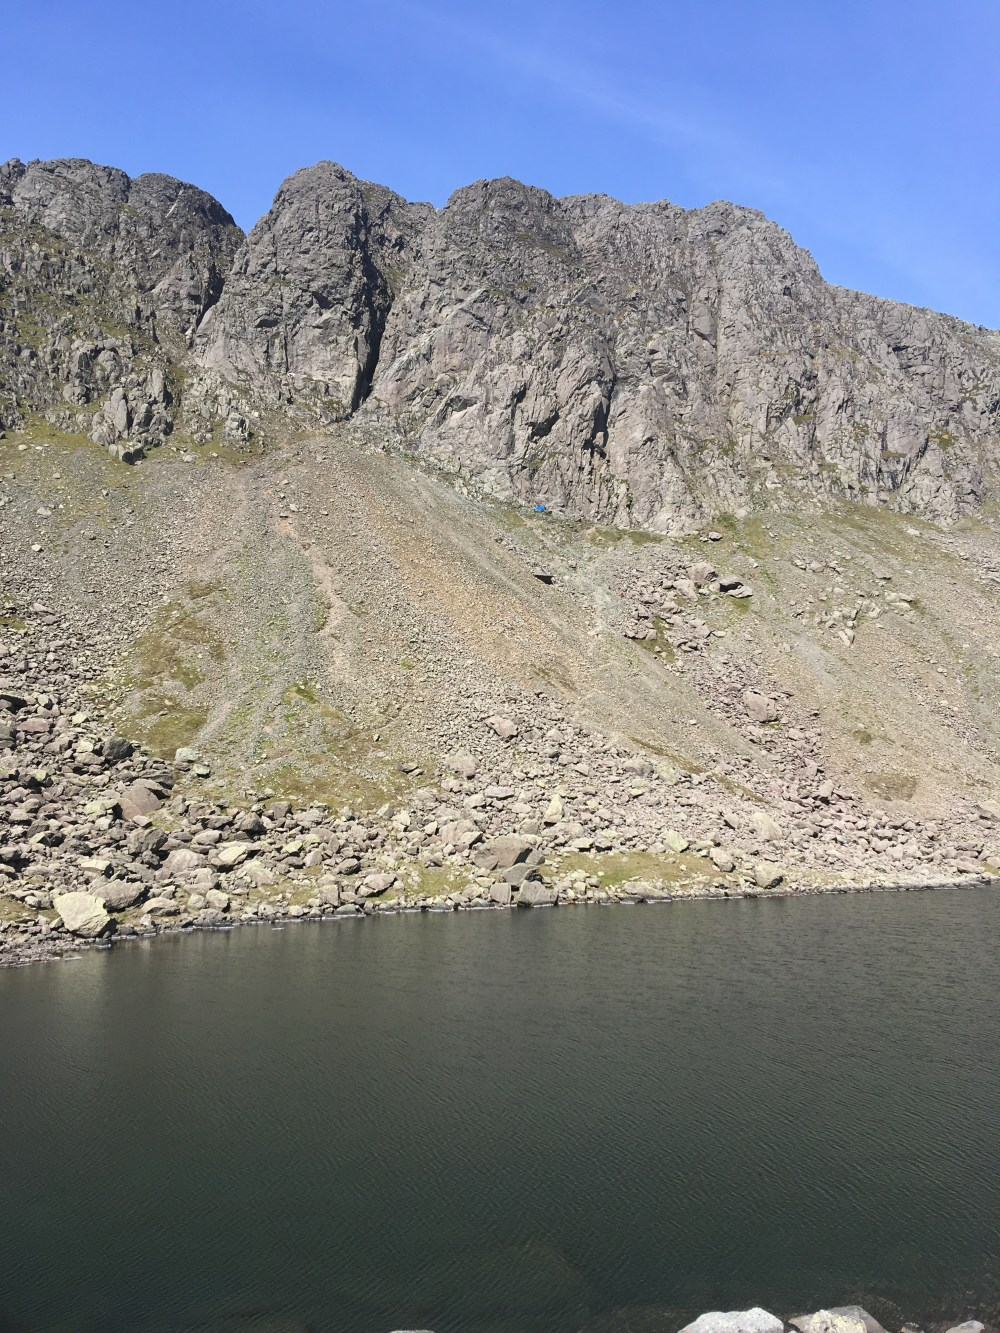 32 Dow Crag from Goat's Water